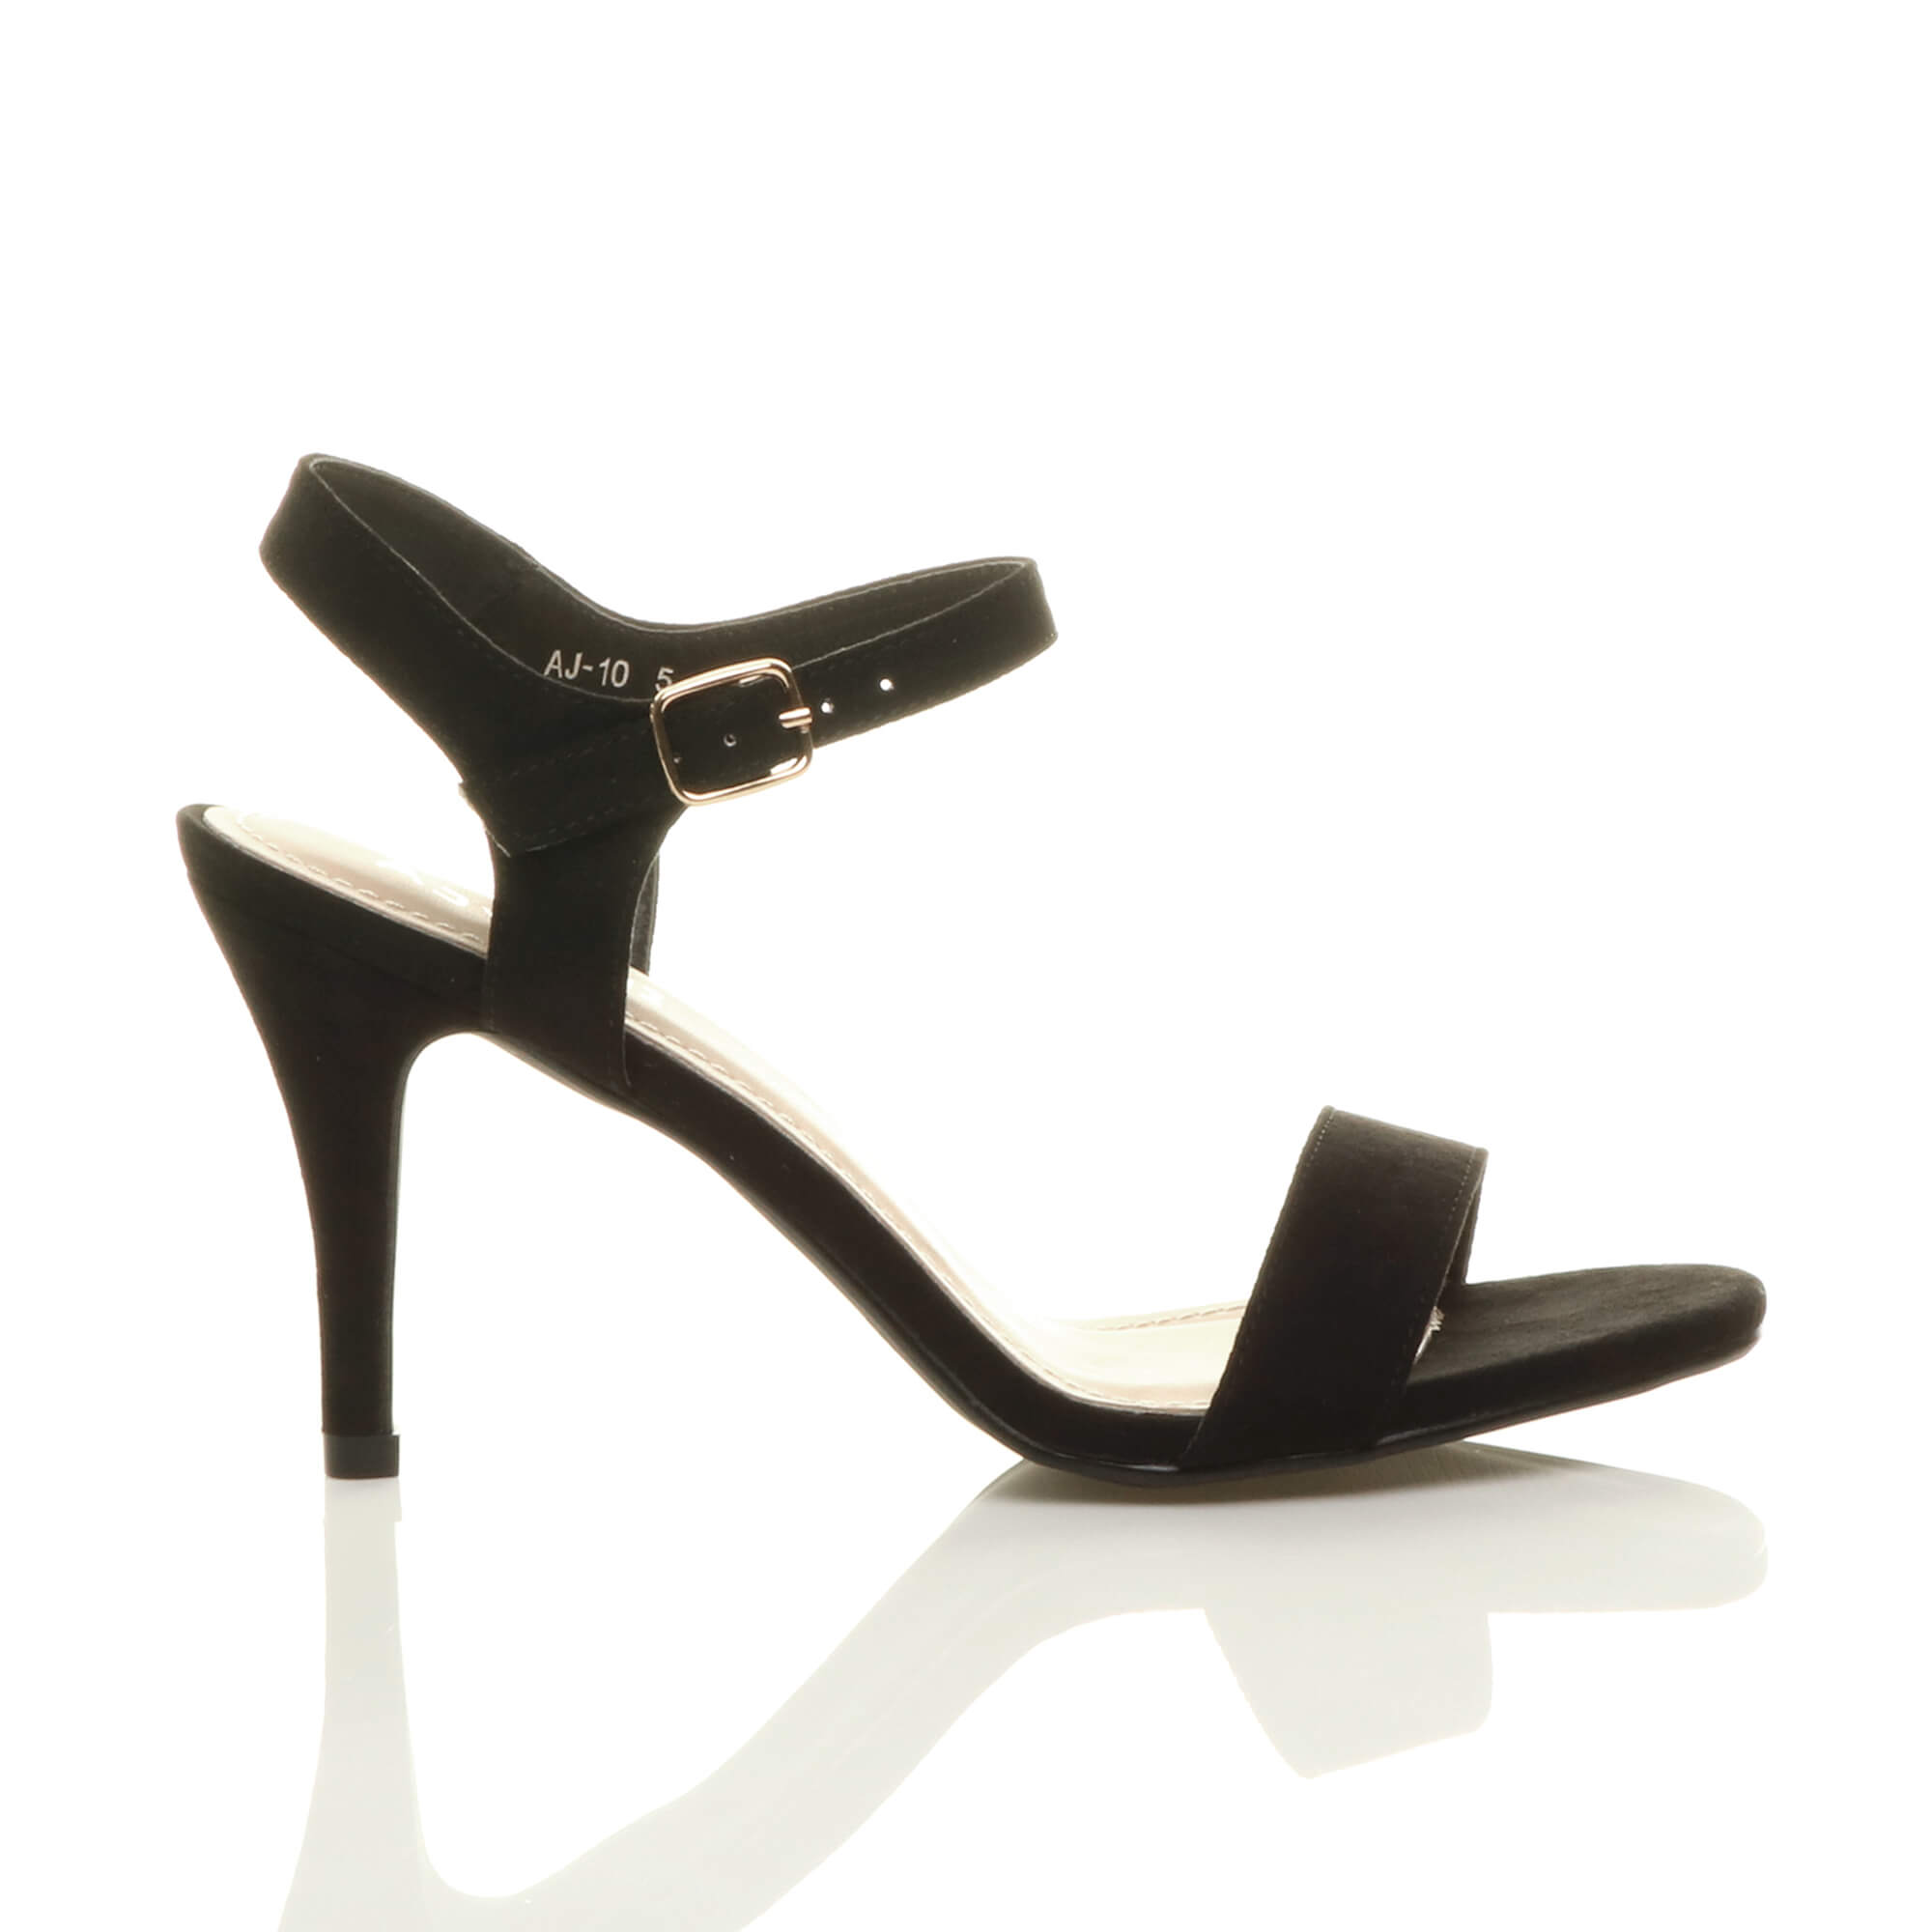 WOMENS-LADIES-HIGH-HEEL-BUCKLE-STRAPPY-BASIC-BARELY-THERE-SANDALS-SHOES-SIZE thumbnail 10